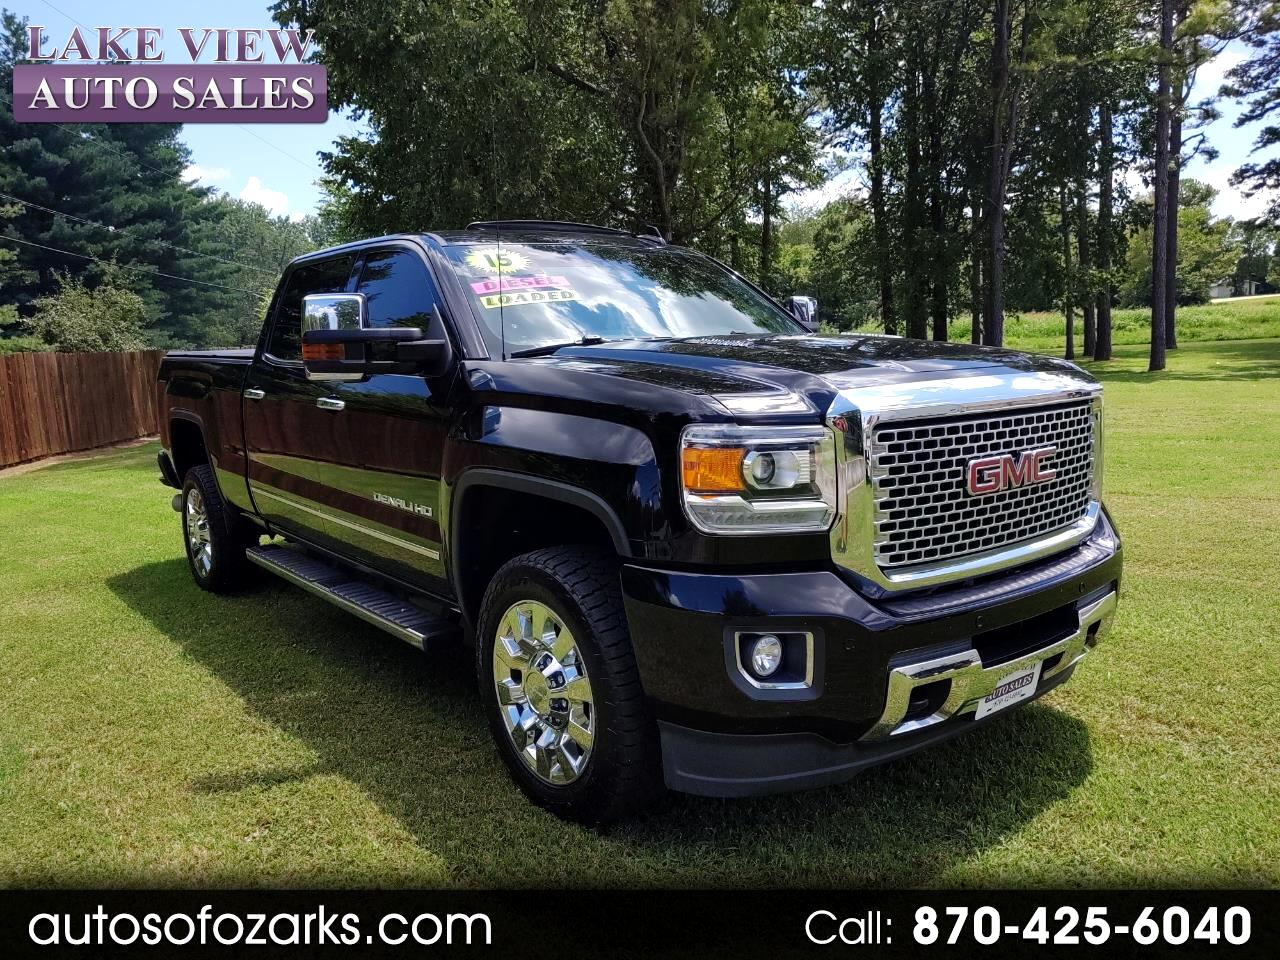 "2015 GMC Sierra 2500HD available WiFi 4WD Crew Cab 153.7"" Denali"